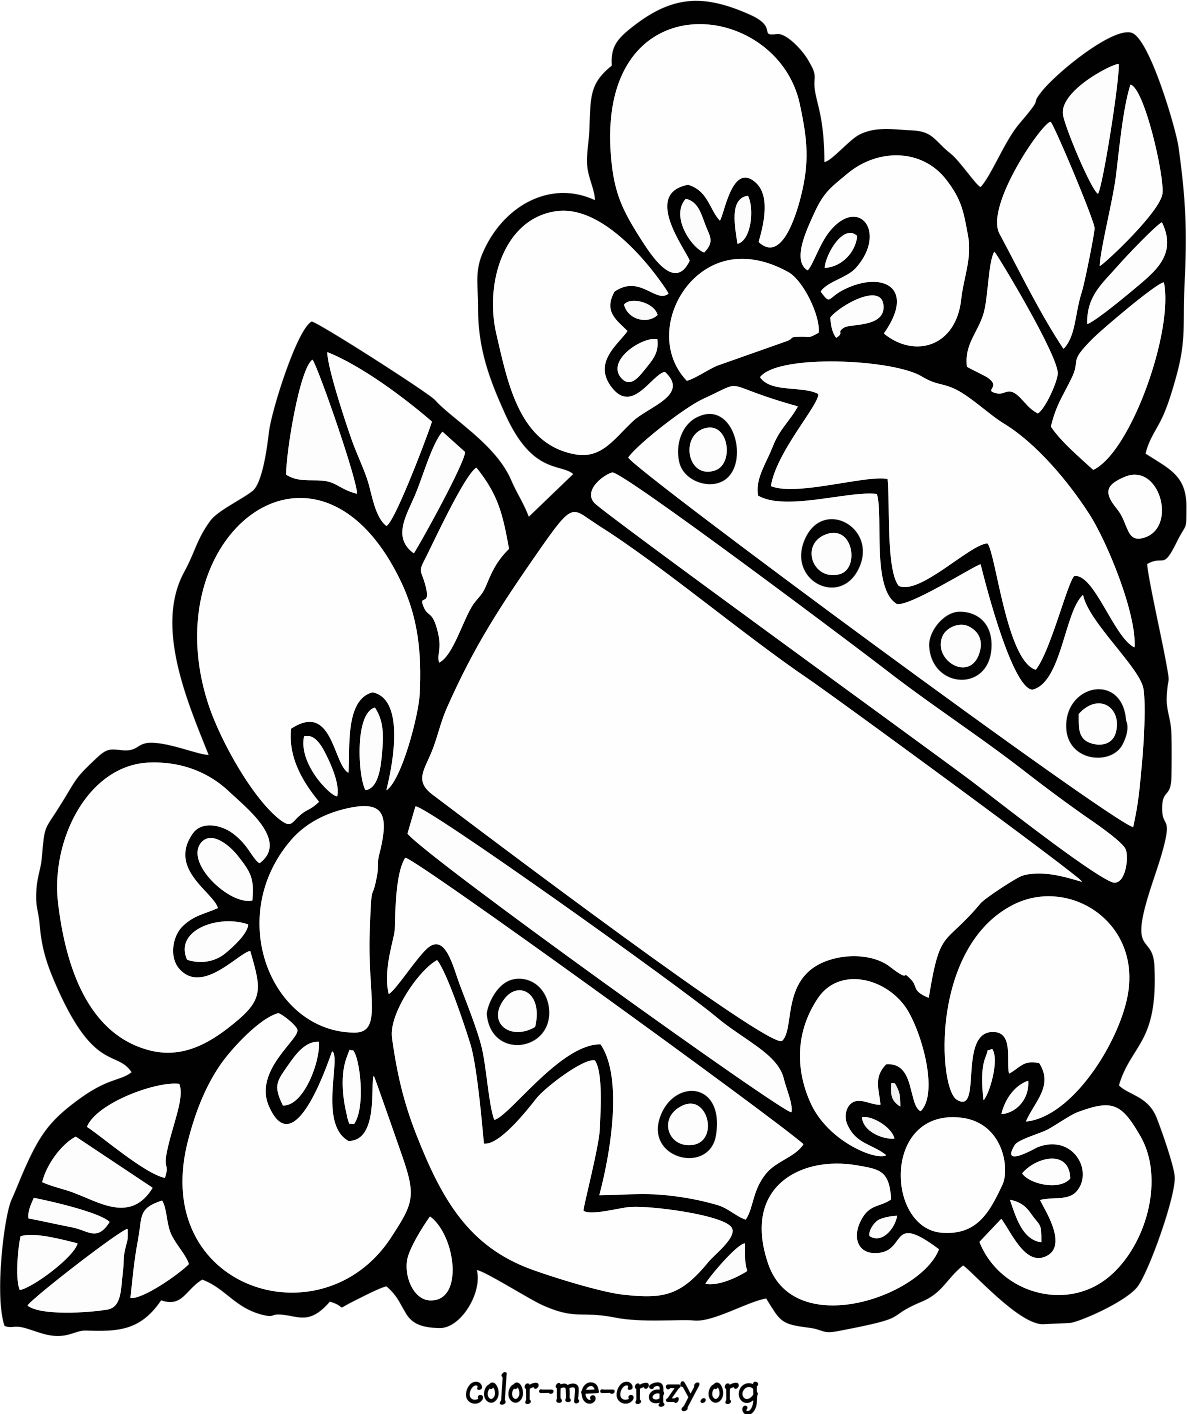 Color Me Crazy Coloring Pages